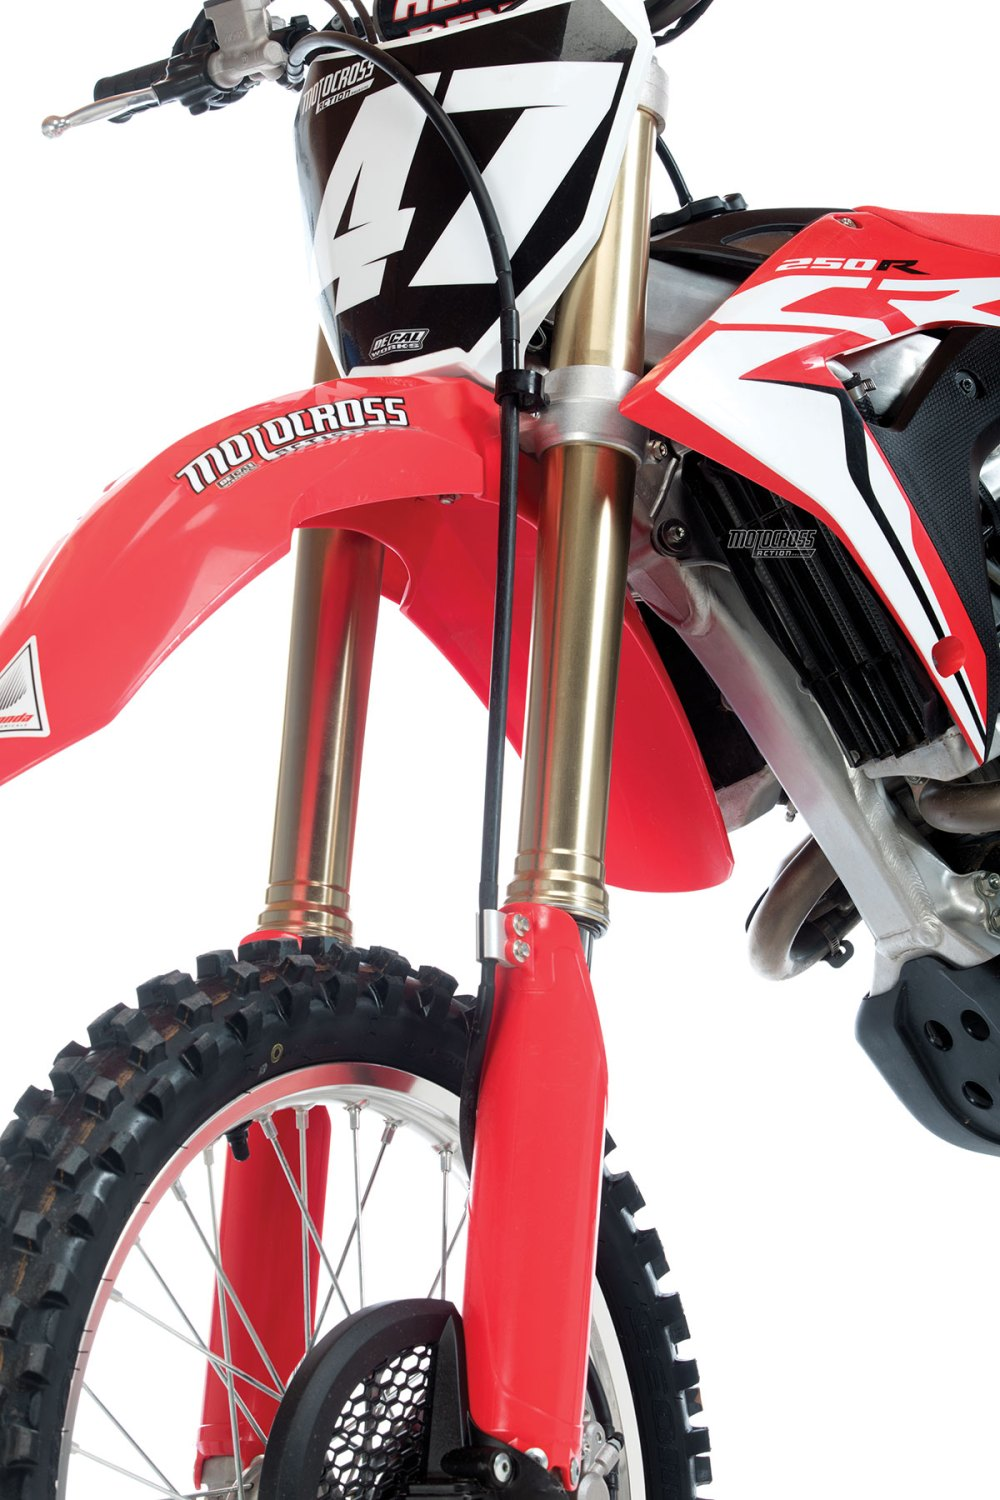 medium resolution of the handling and feel of the crf250 are its saving graces the showa a kit spring forks work superbly under the new chassis it makes riding easier